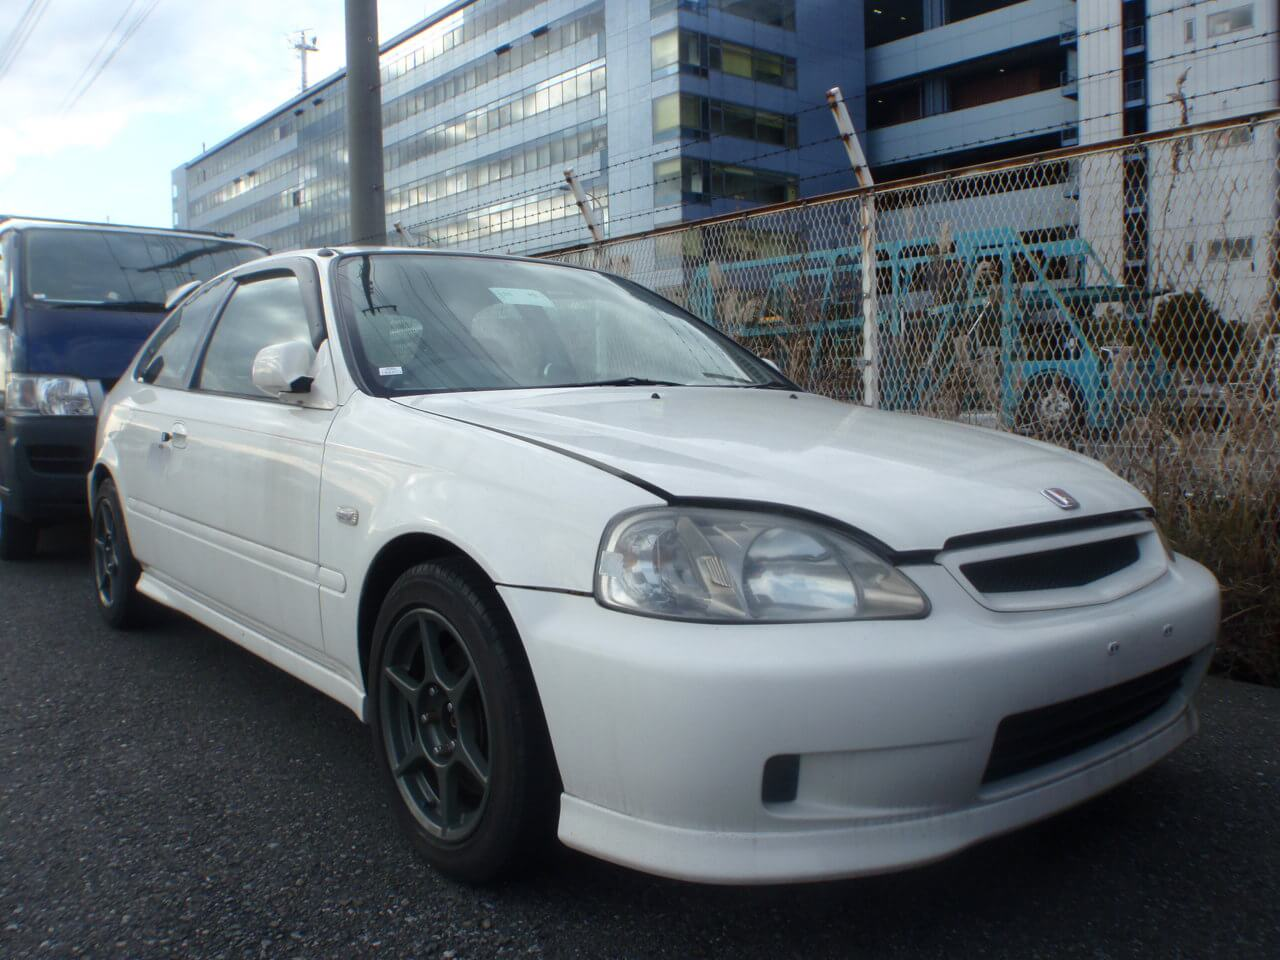 Honda Civic EK9  Type R Front